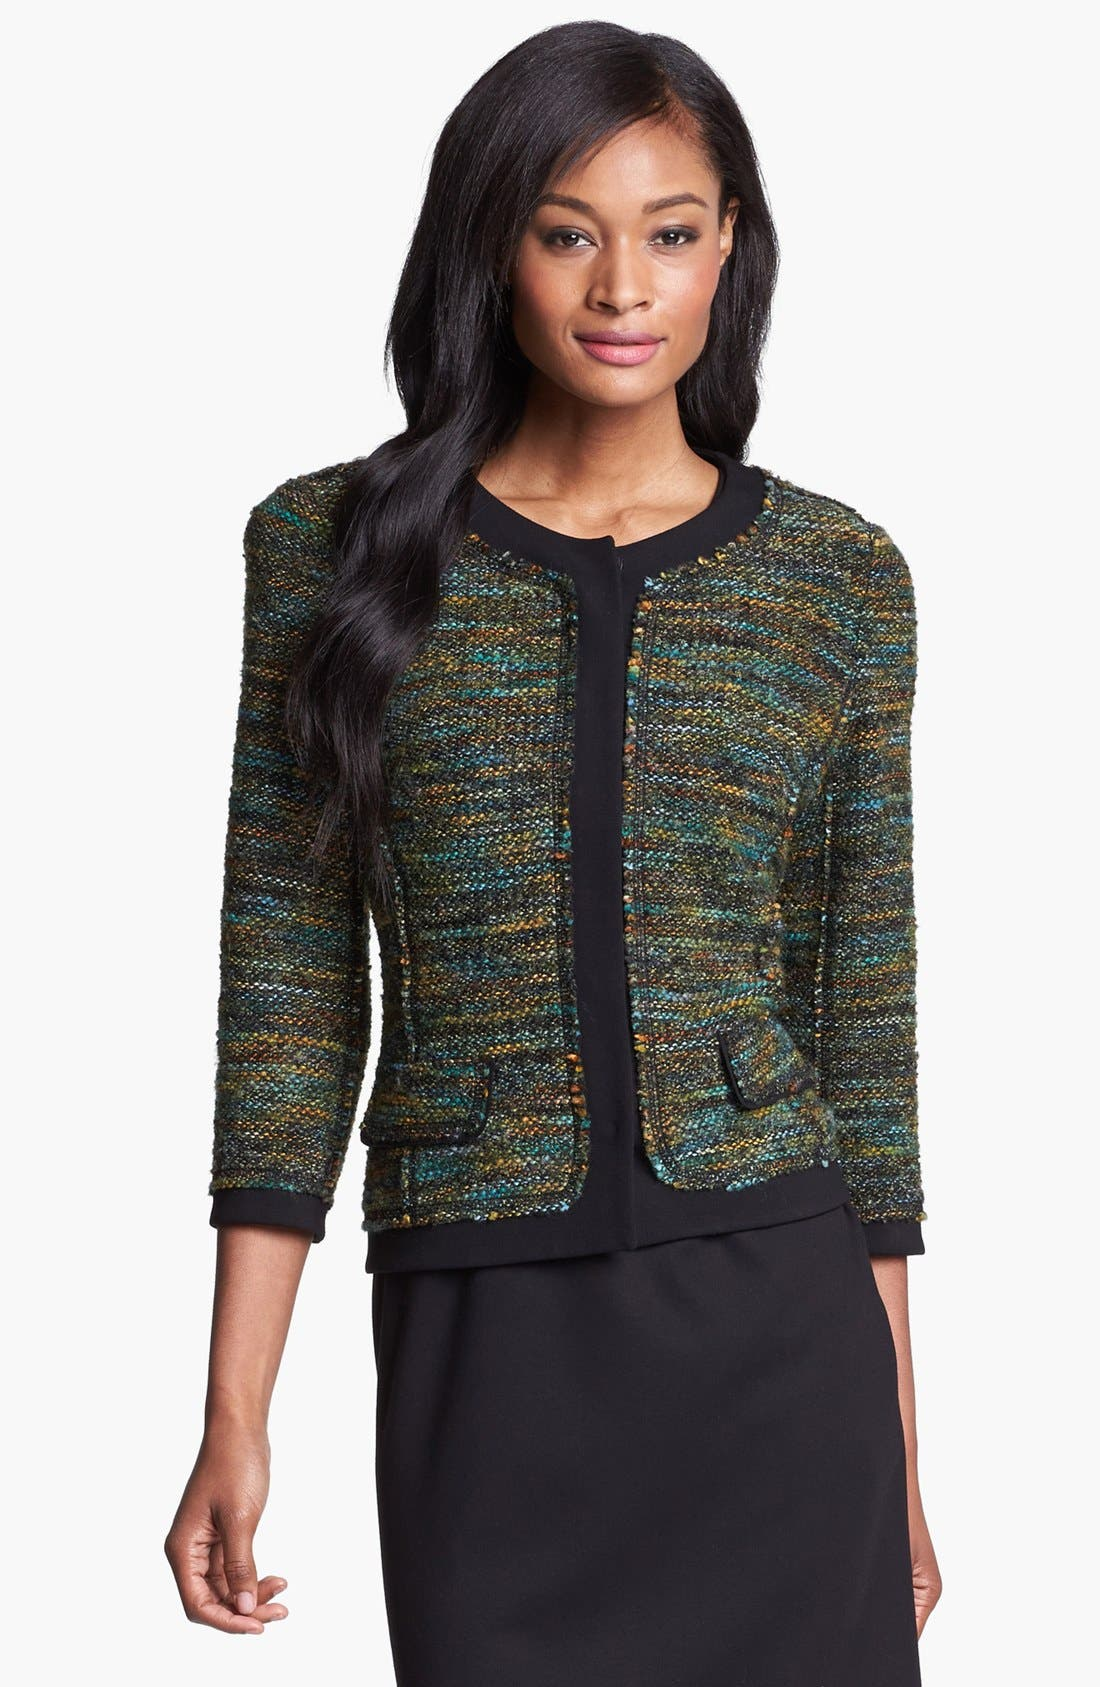 Alternate Image 1 Selected - Lafayette 148 New York 'Marielle - Majestic Weave' Jacket